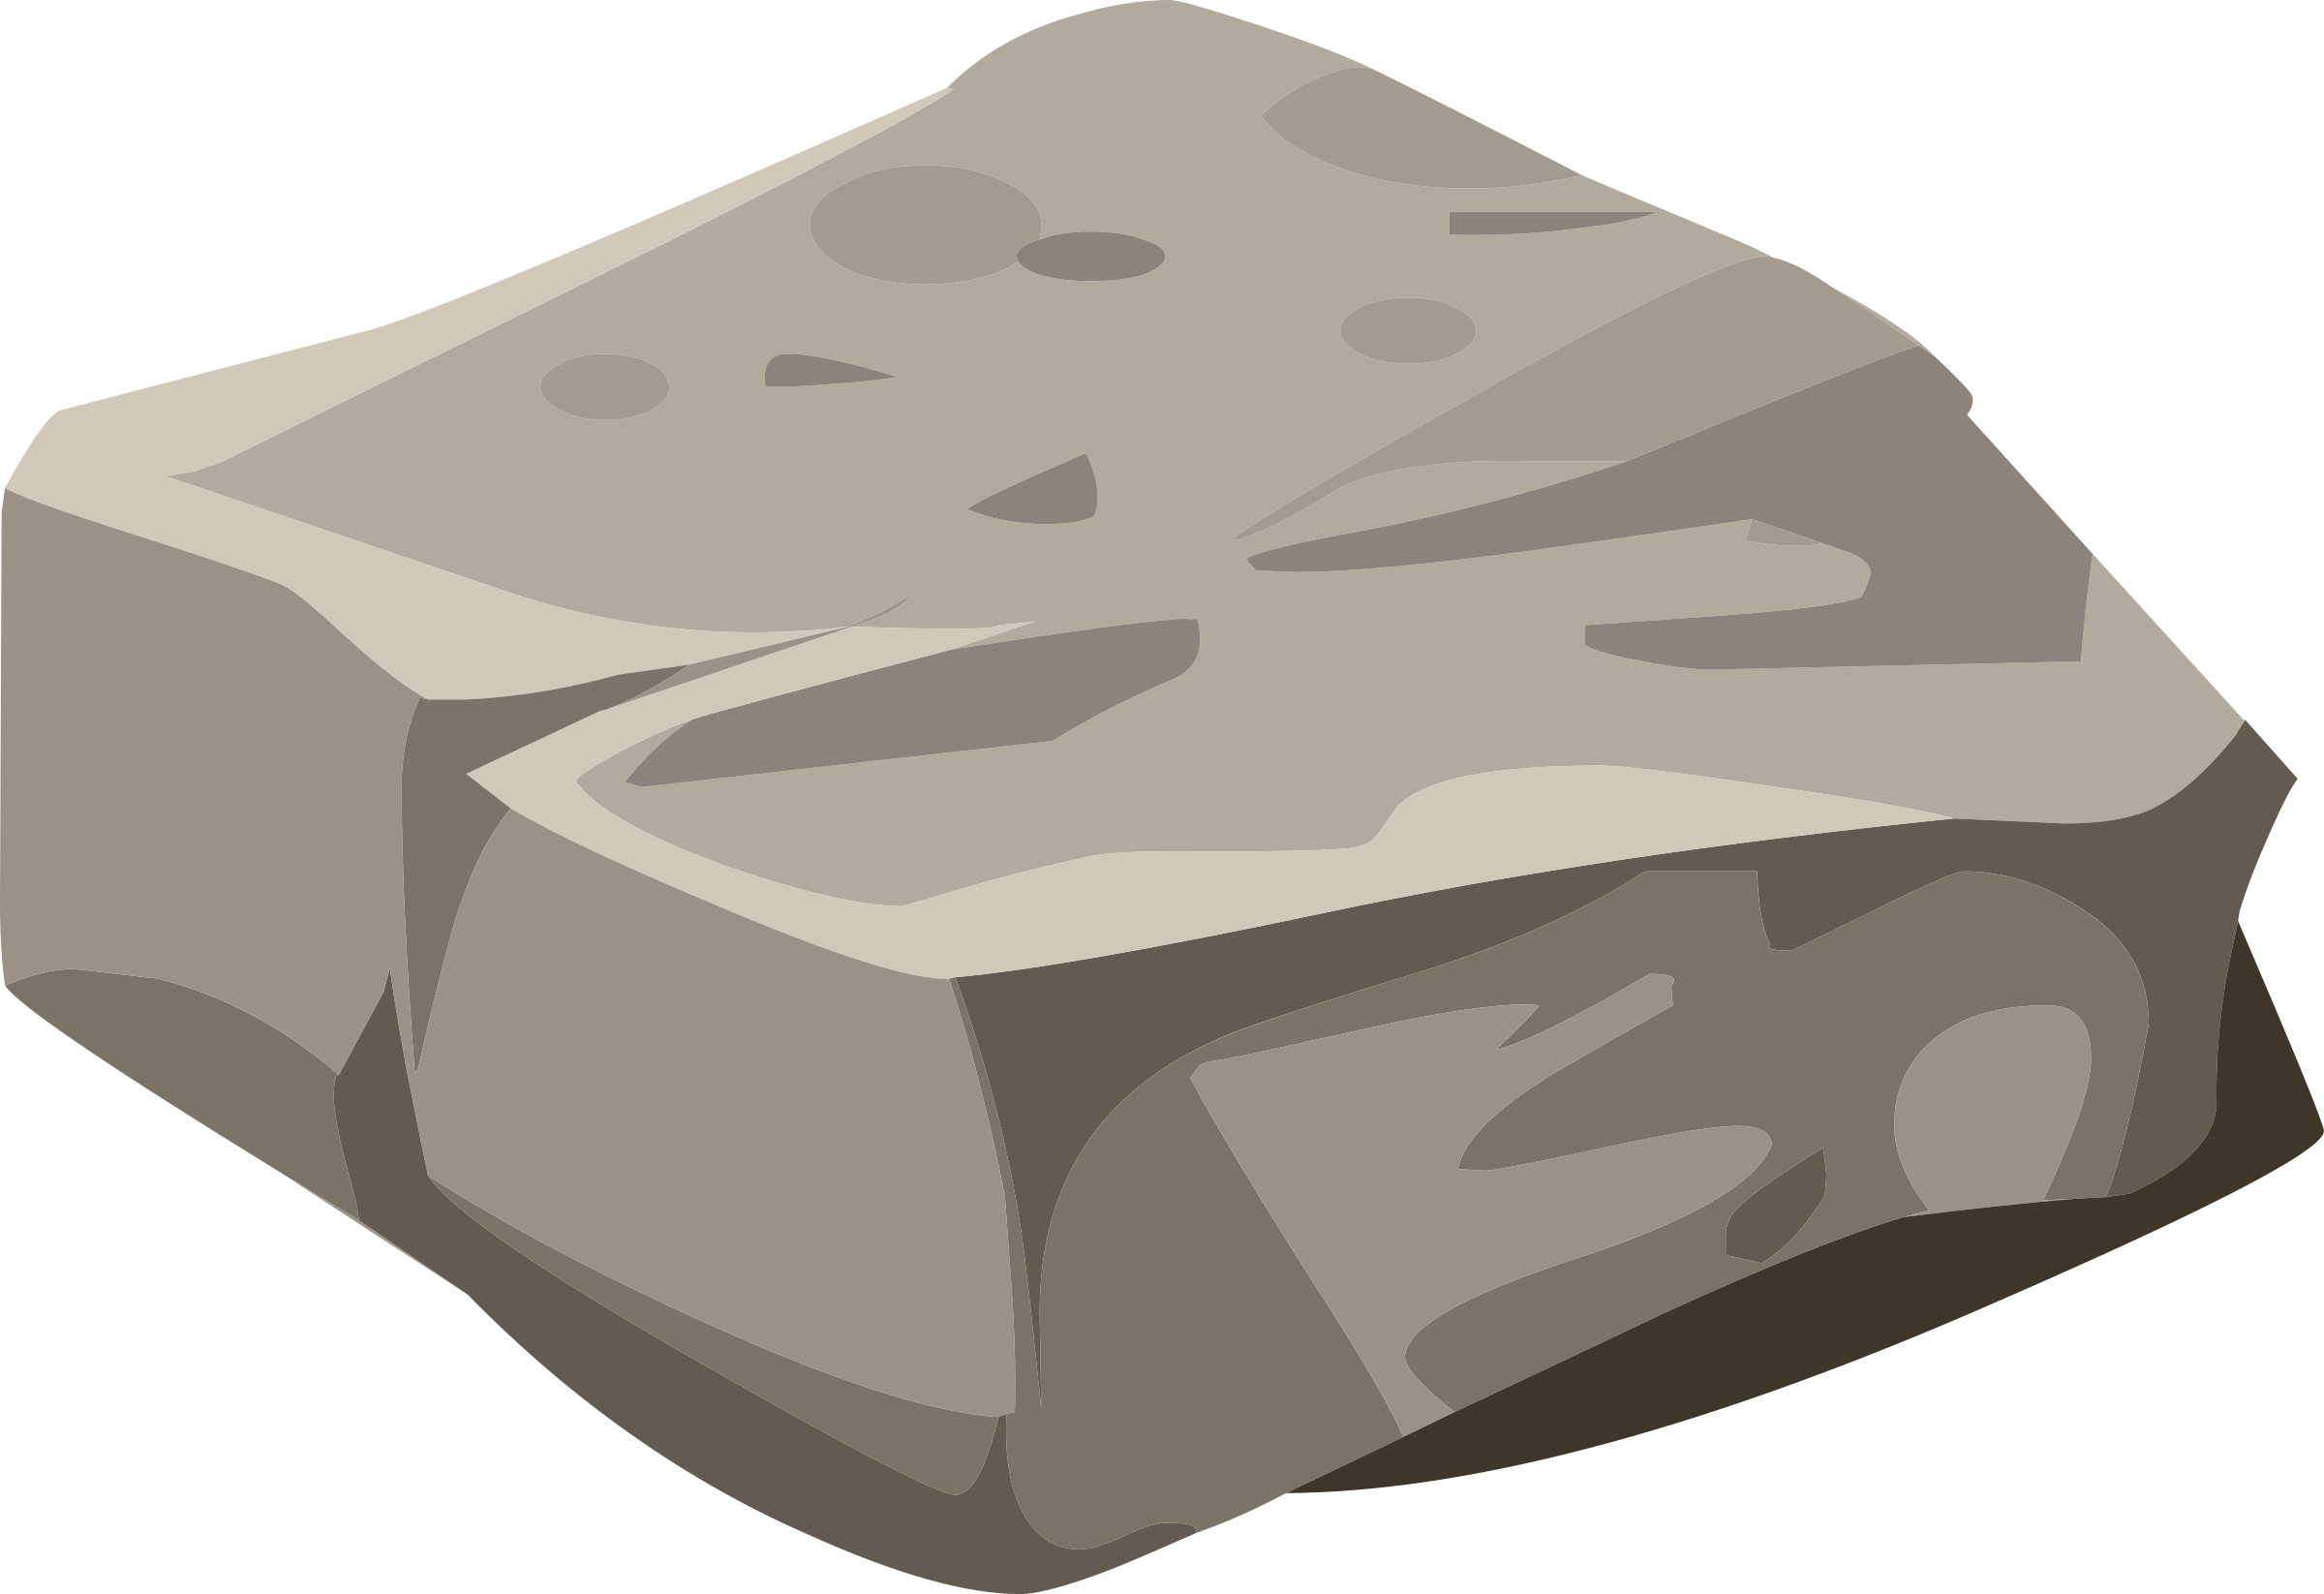 Rock clipart #5, Download drawings